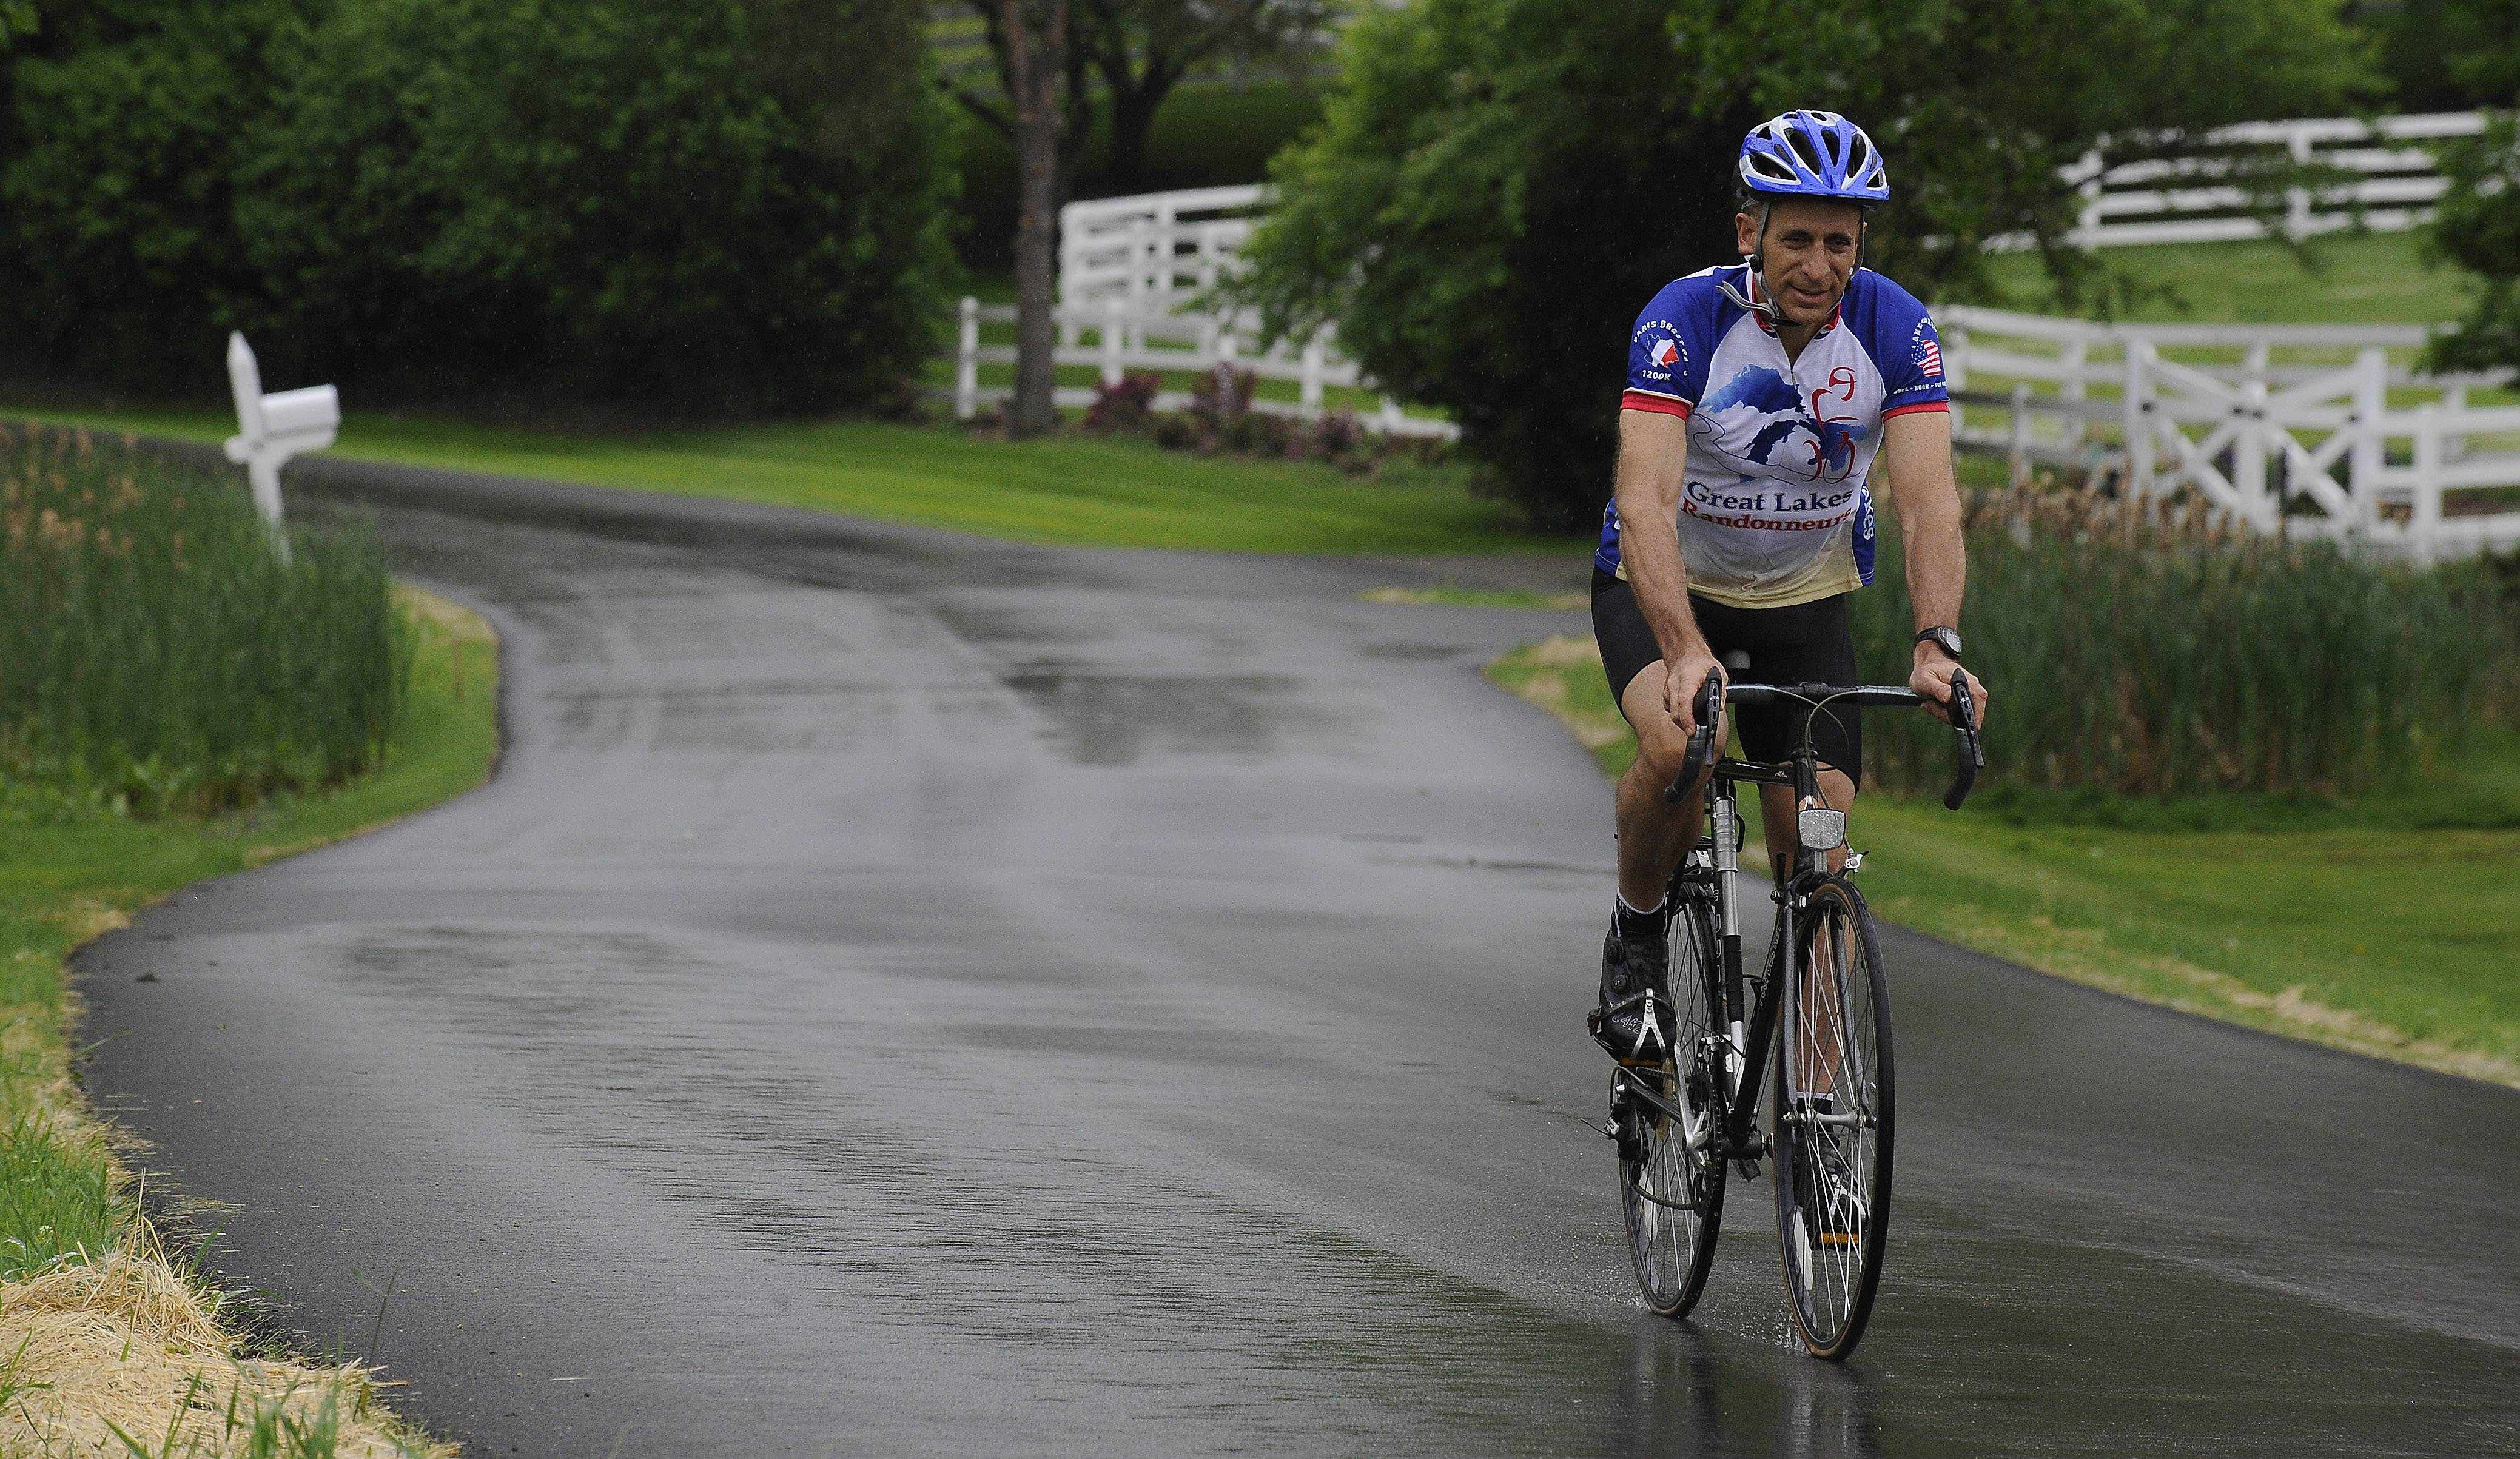 Bike rides in our recent damp and cold should help David Hirsch of Barrington in his quest to ride his bicycle from California to Chicago in 21 days. The 54-year-old founder of two charities devoted to fatherhood hopes to raise funds and awareness.